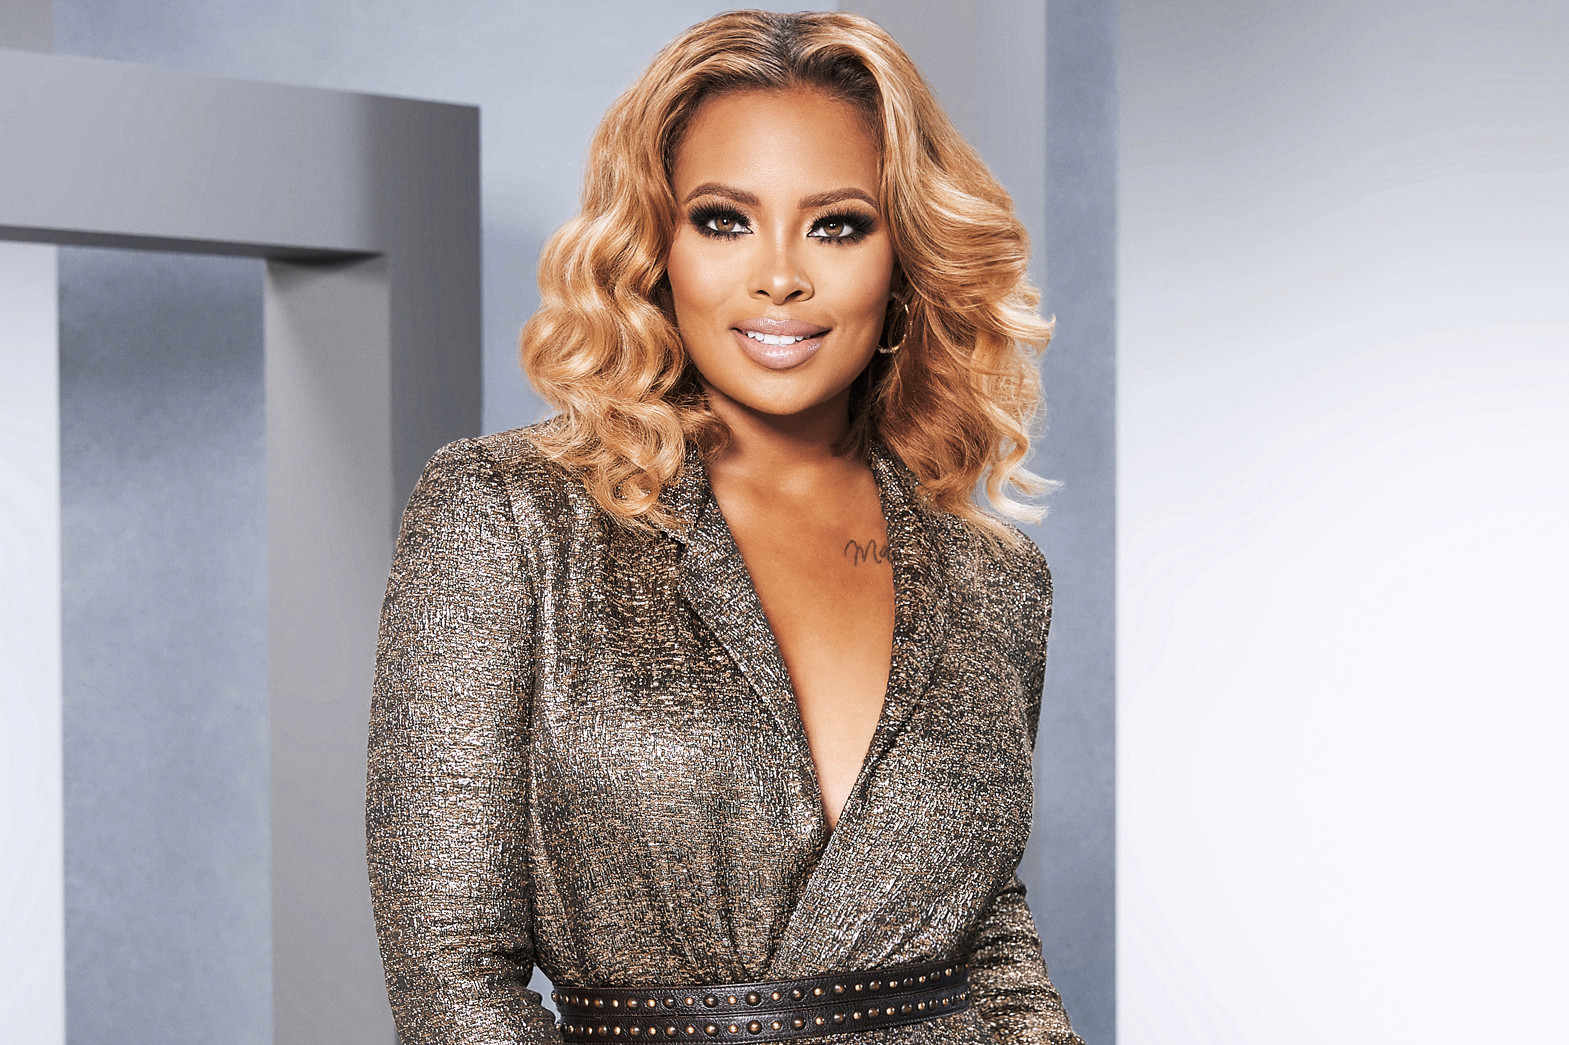 eva-marcilles-fans-are-slamming-her-after-this-instagram-post